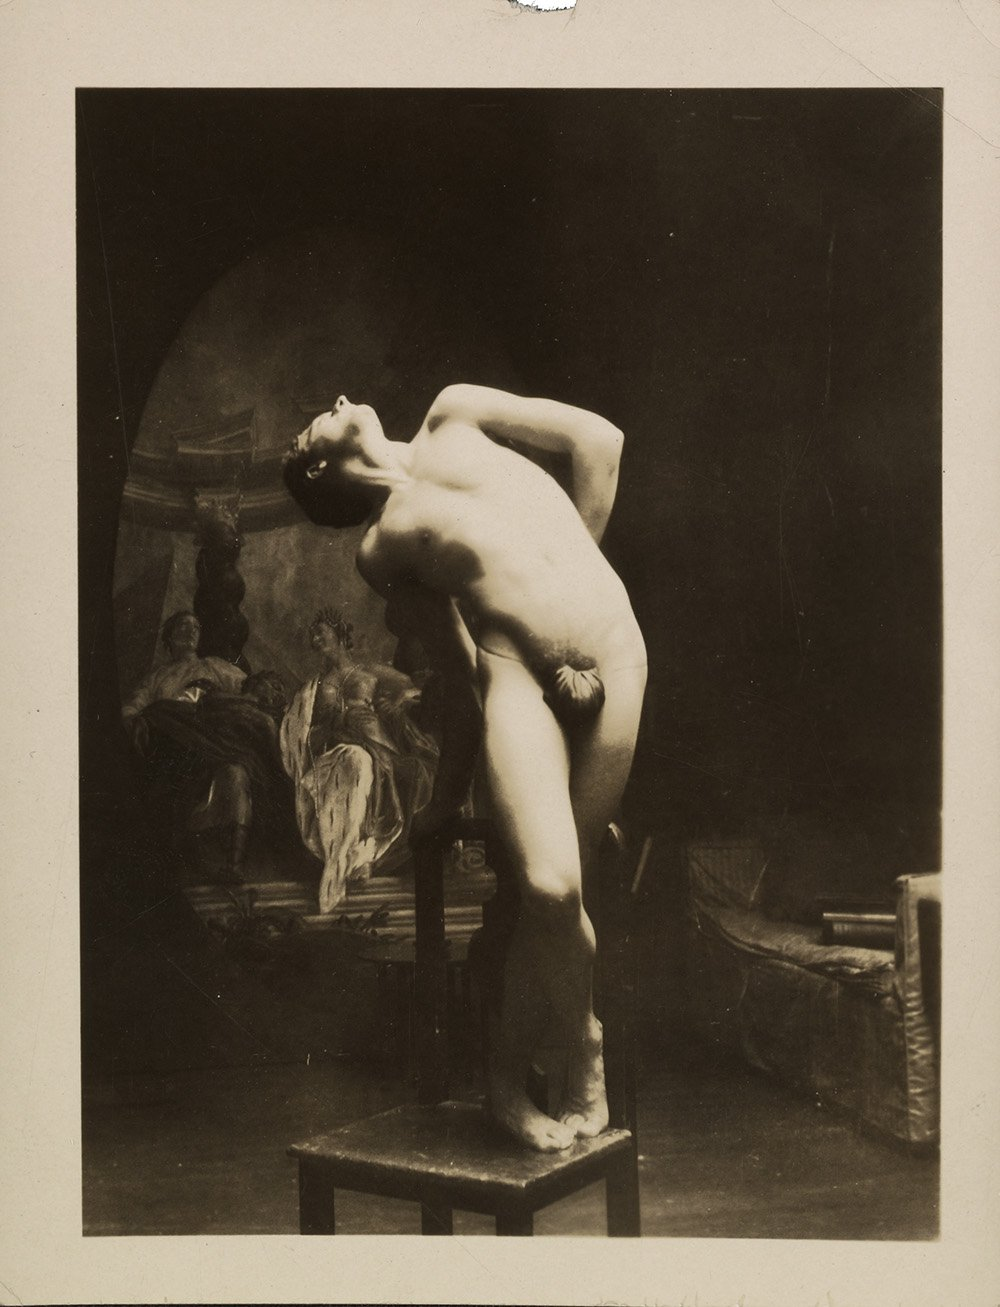 Photograph of an artists' model posing on a chair